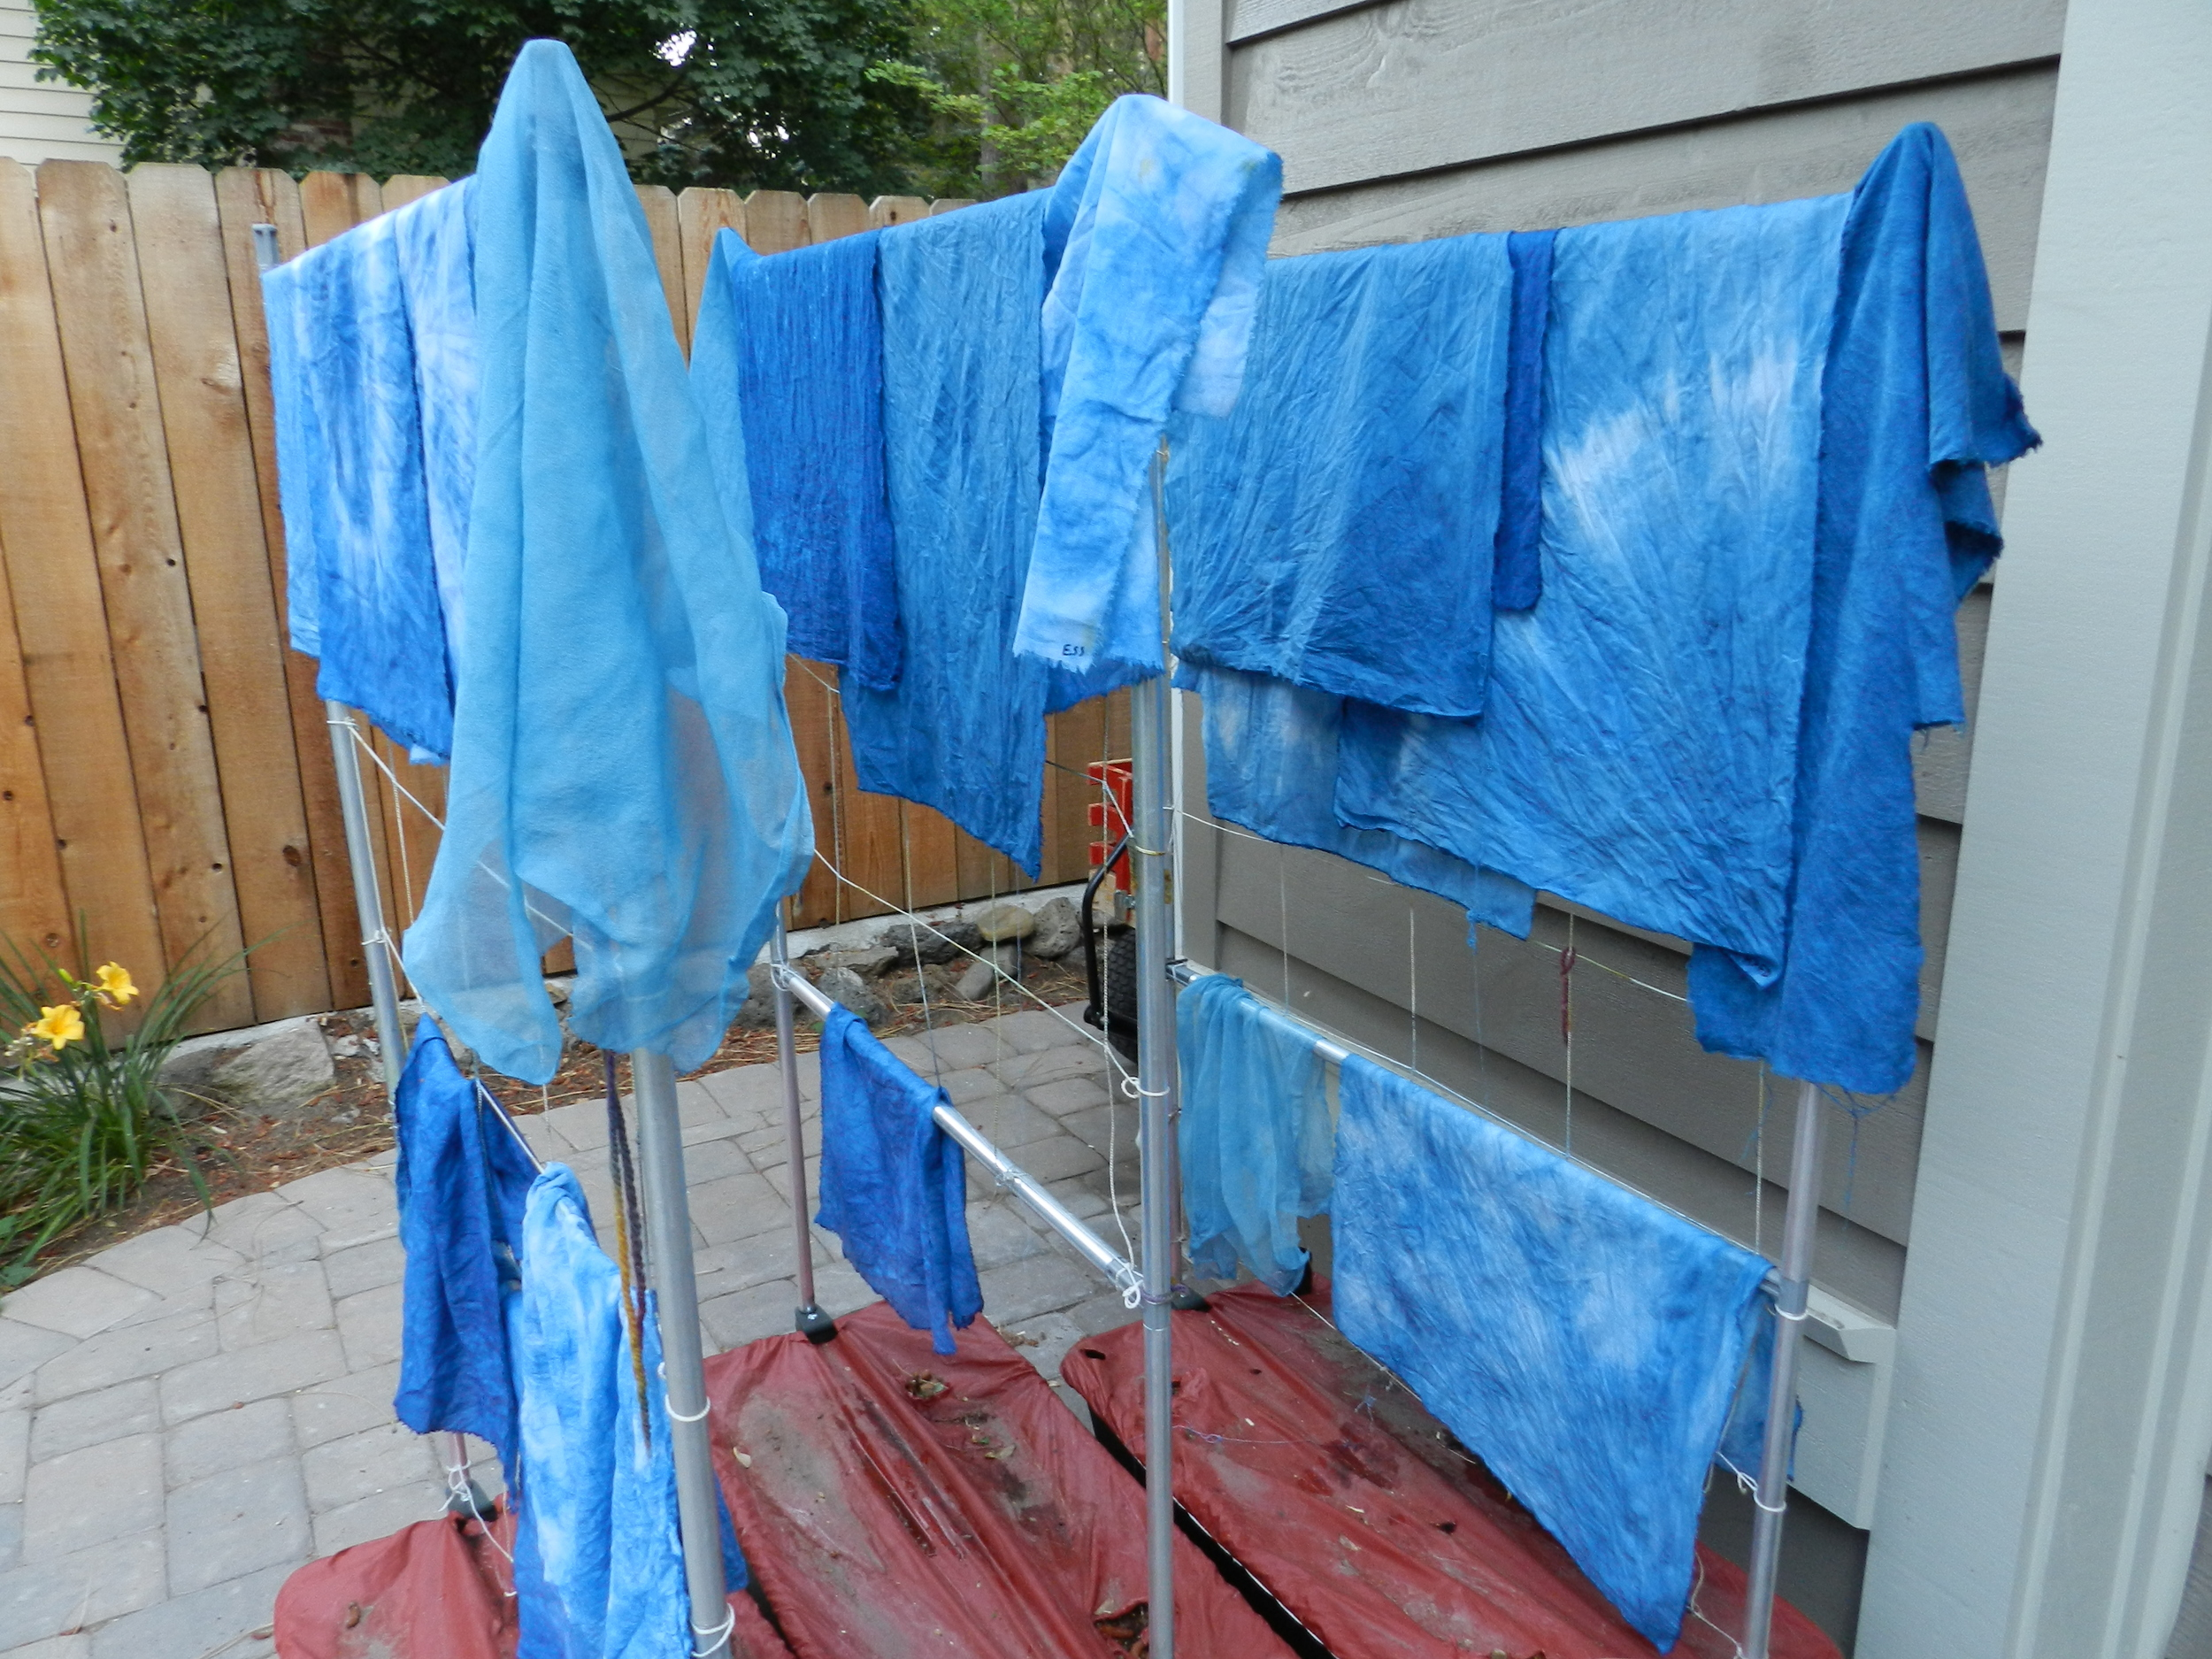 Indigo dyeing on the first day of Fall